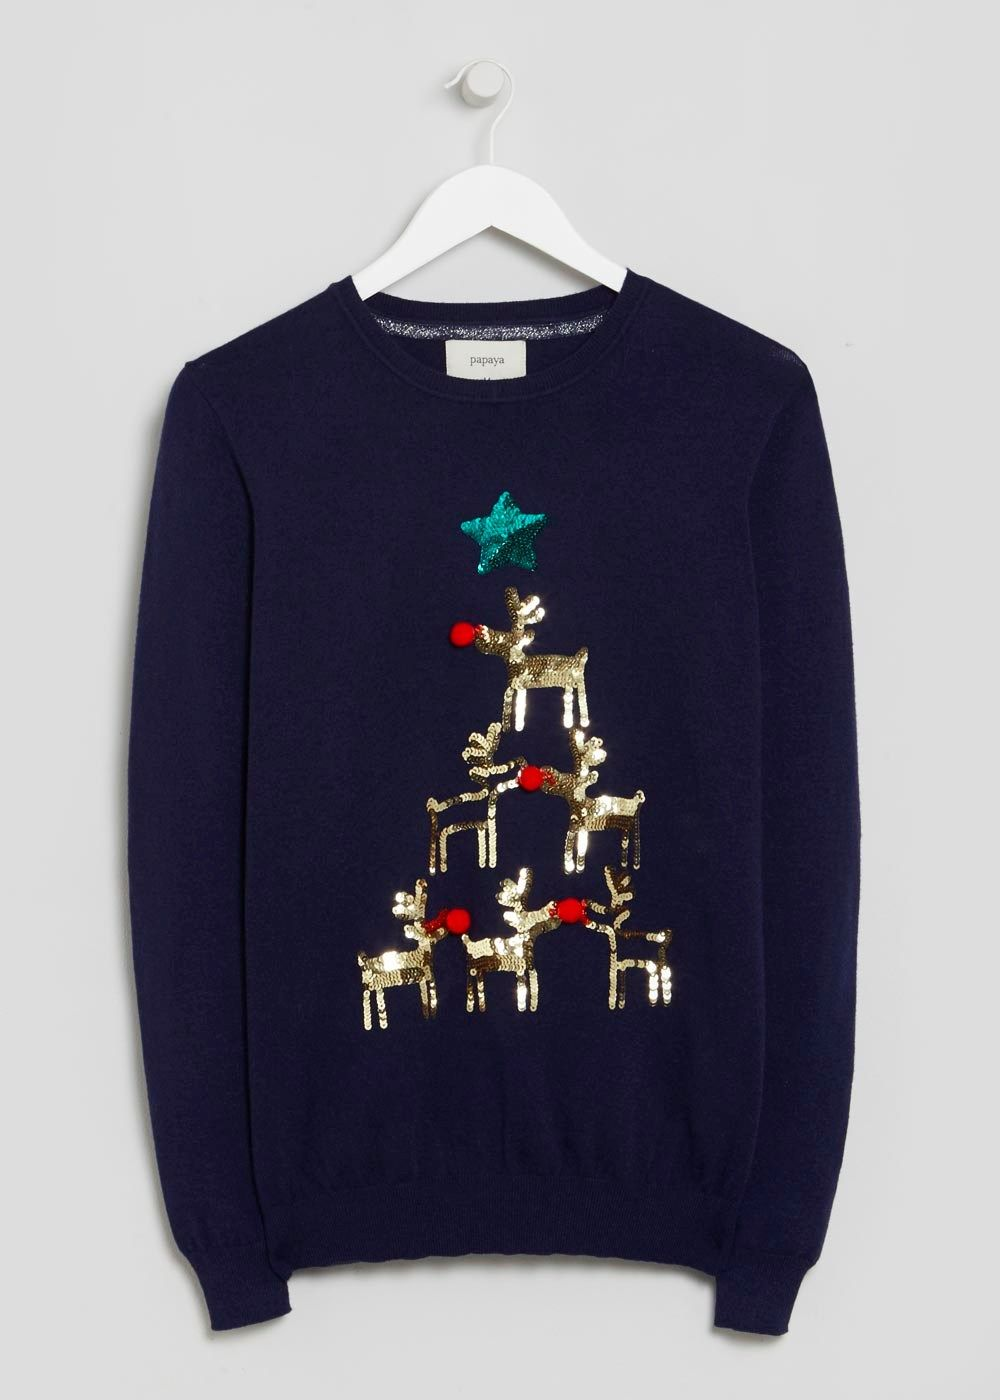 ee56e58c94f9 Novelty Christmas Jumper - Matalan